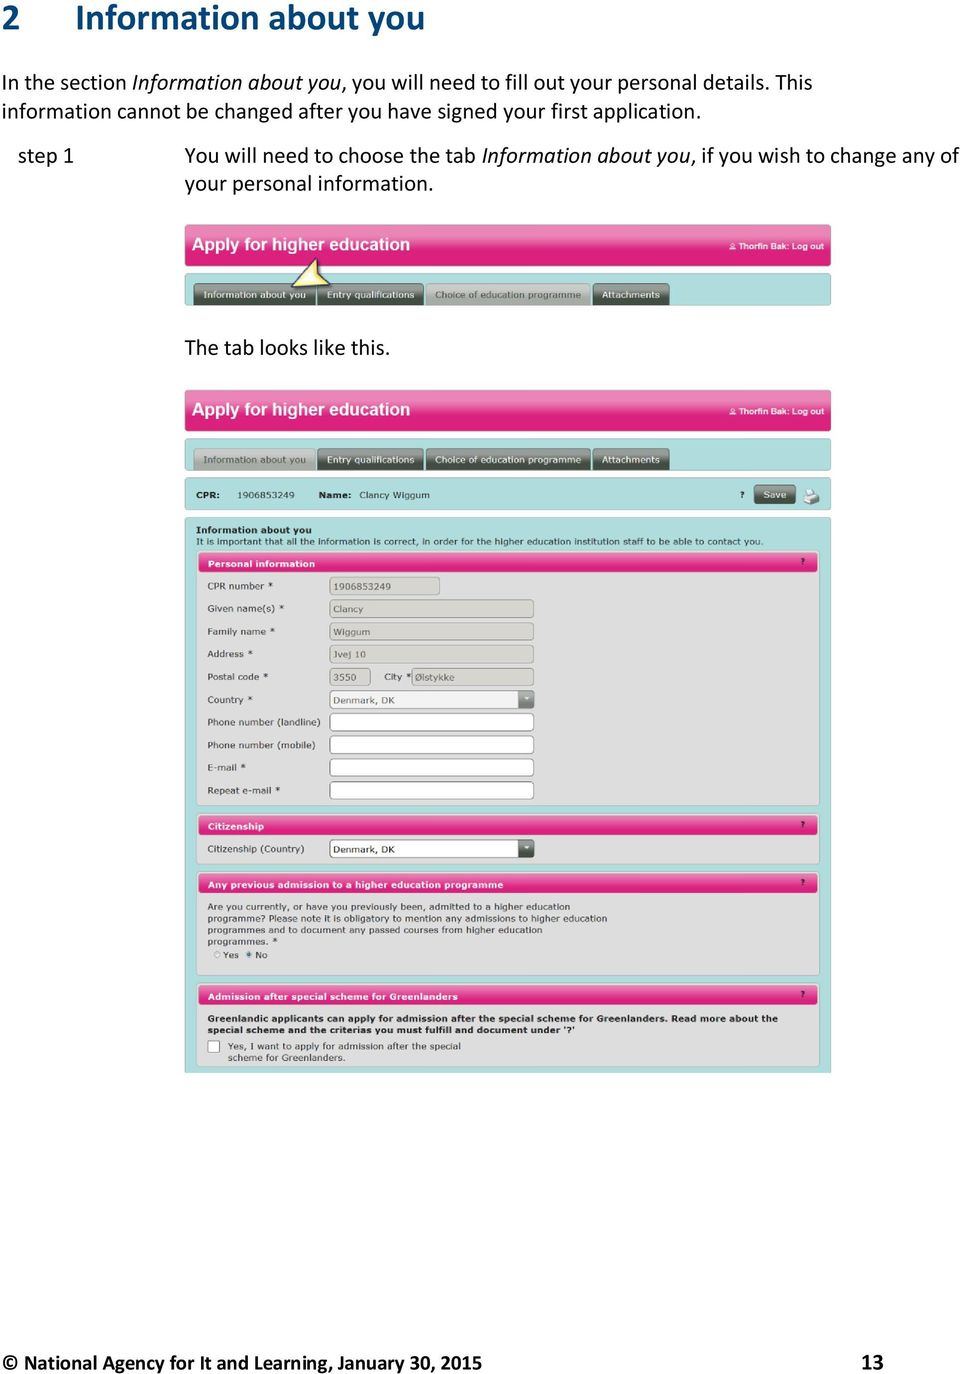 step 1 You will need to choose the tab Information about you, if you wish to change any of your